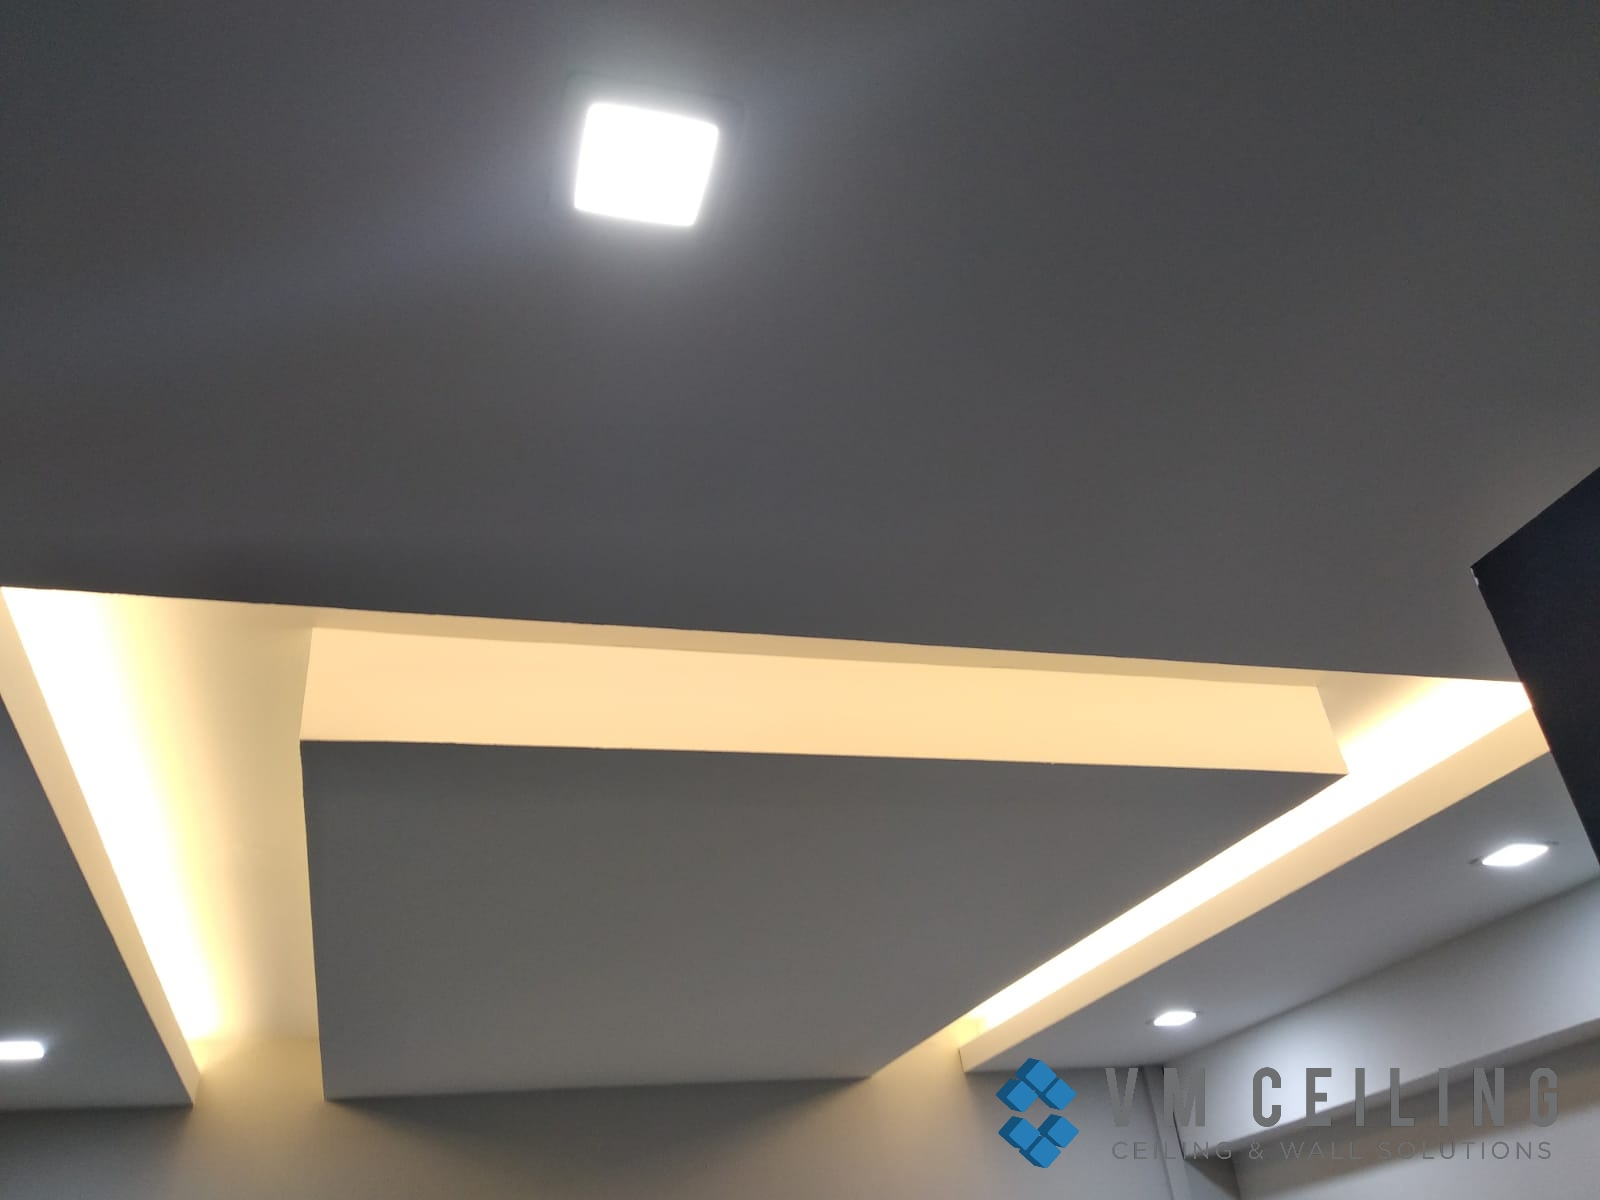 living room false ceiling cove lighting vm ceiling singapore hdb woodlands 6